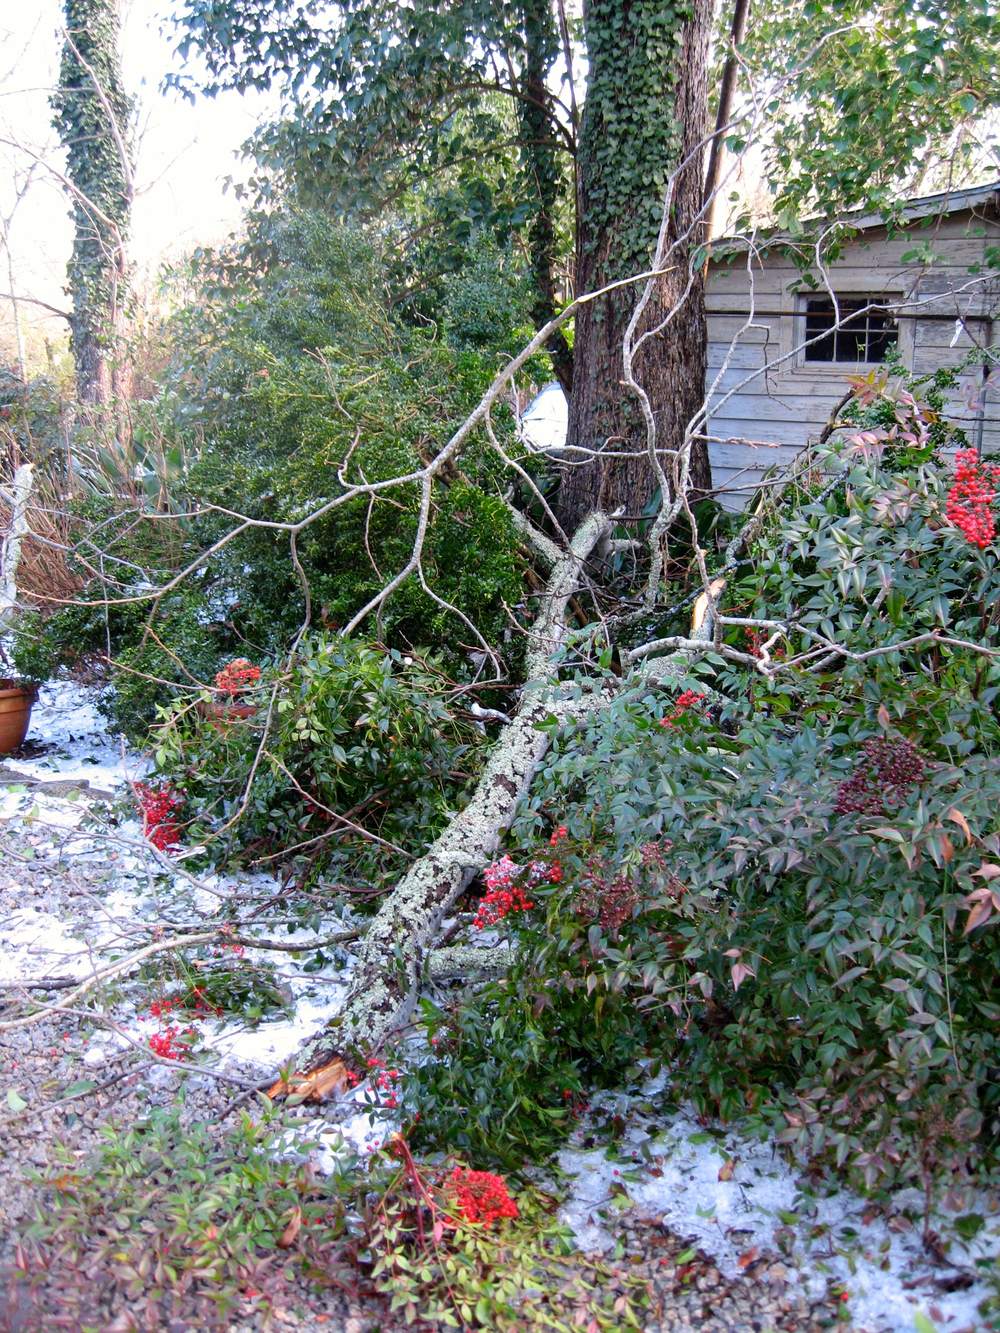 One of many such scenes after the ice storm here at Elm Street.  Broken limbs from magnolias and many other trees littered the grounds.